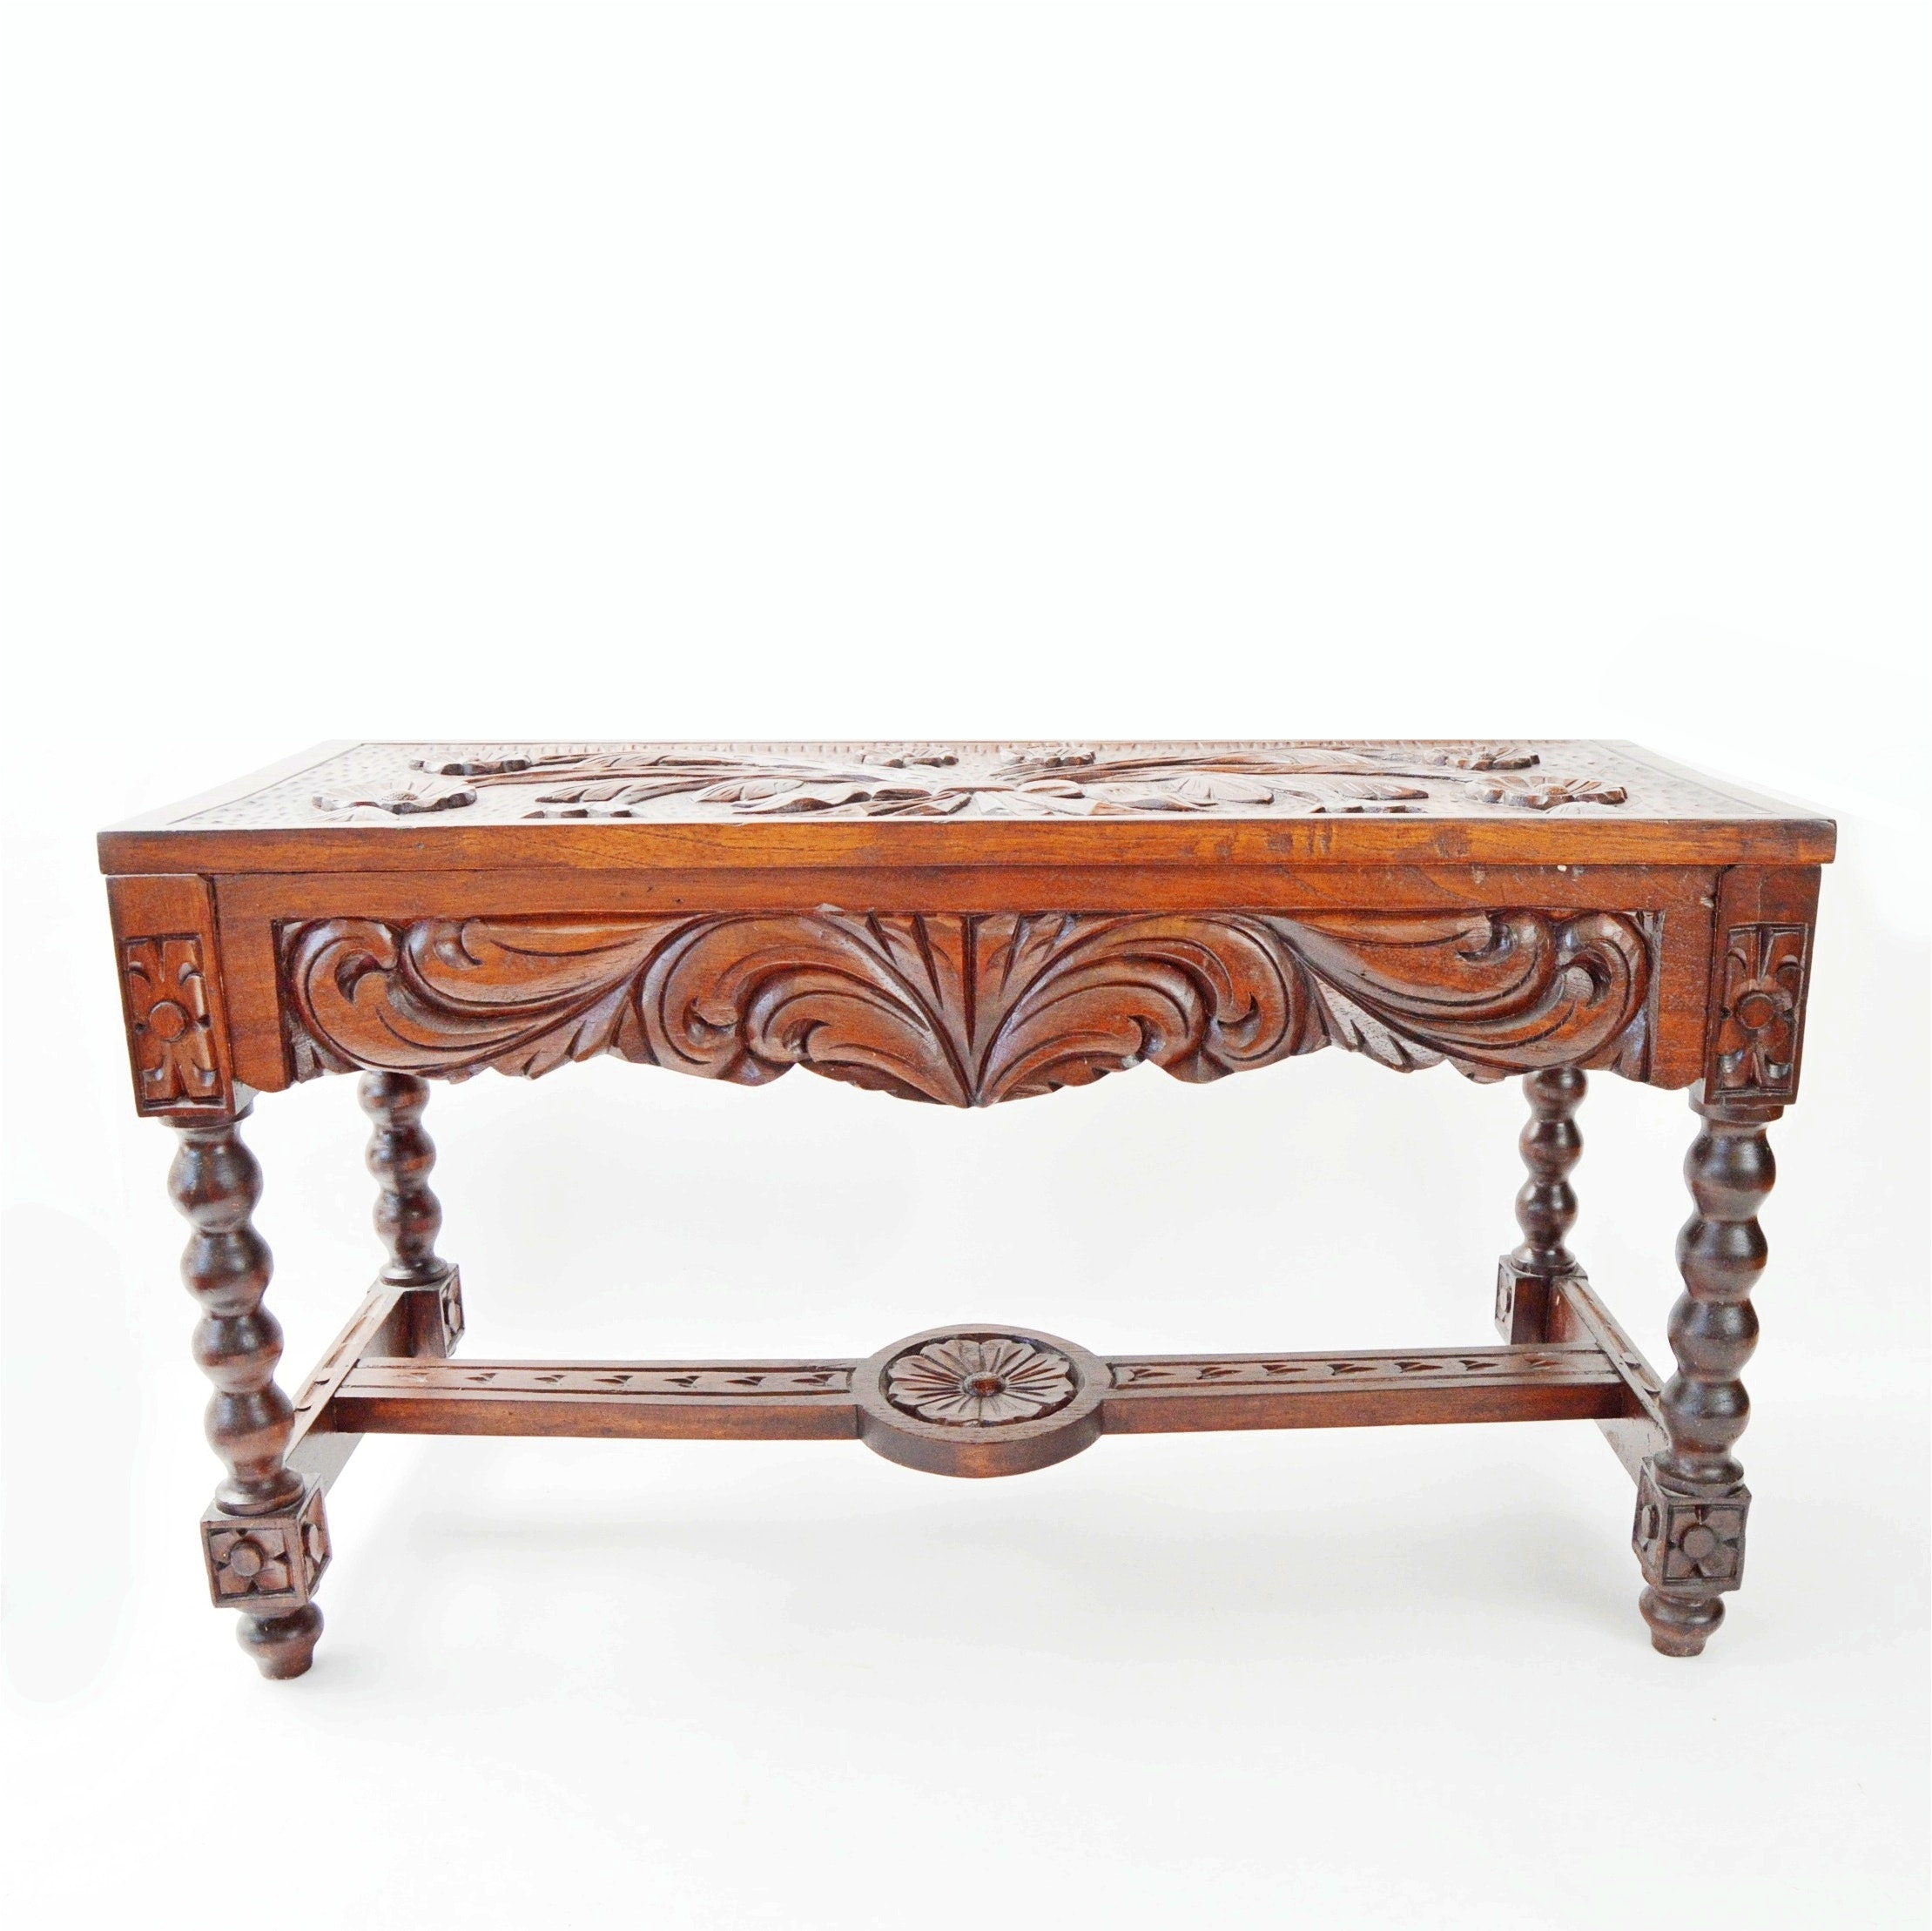 Antique Romanesque Revival Style Hand Carved Walnut Bench